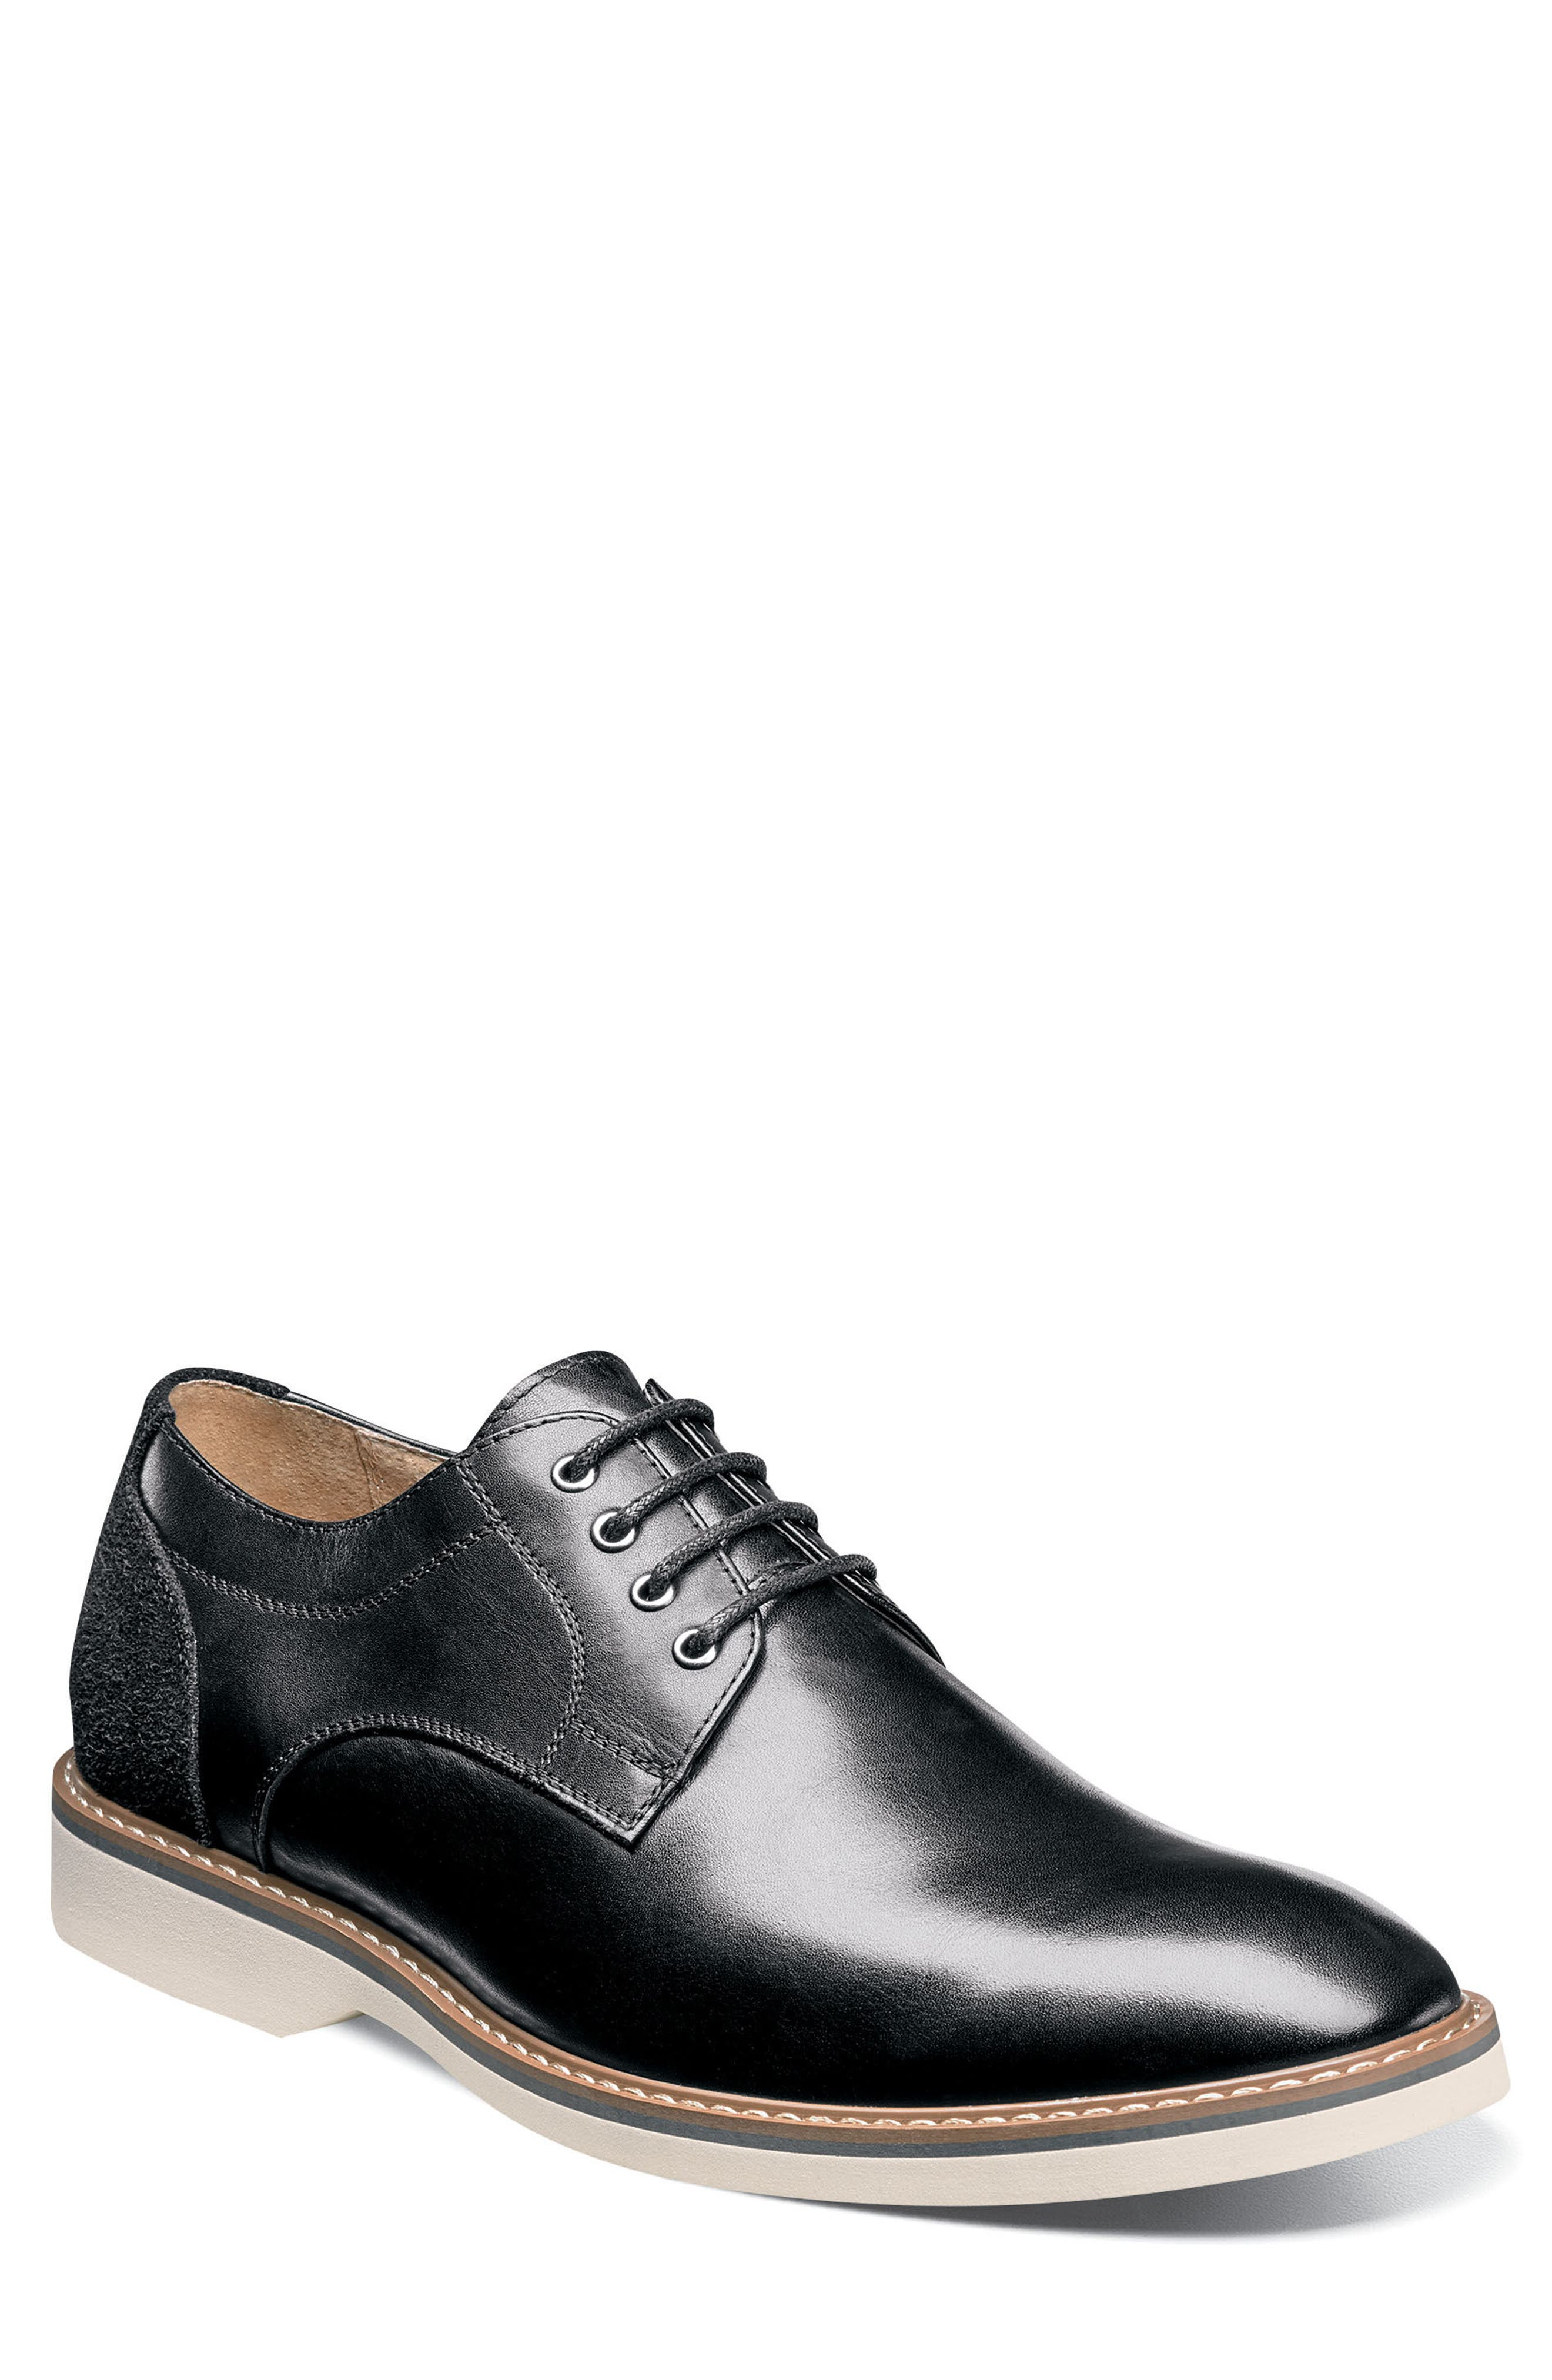 Union Buck Shoe,                             Main thumbnail 1, color,                             001